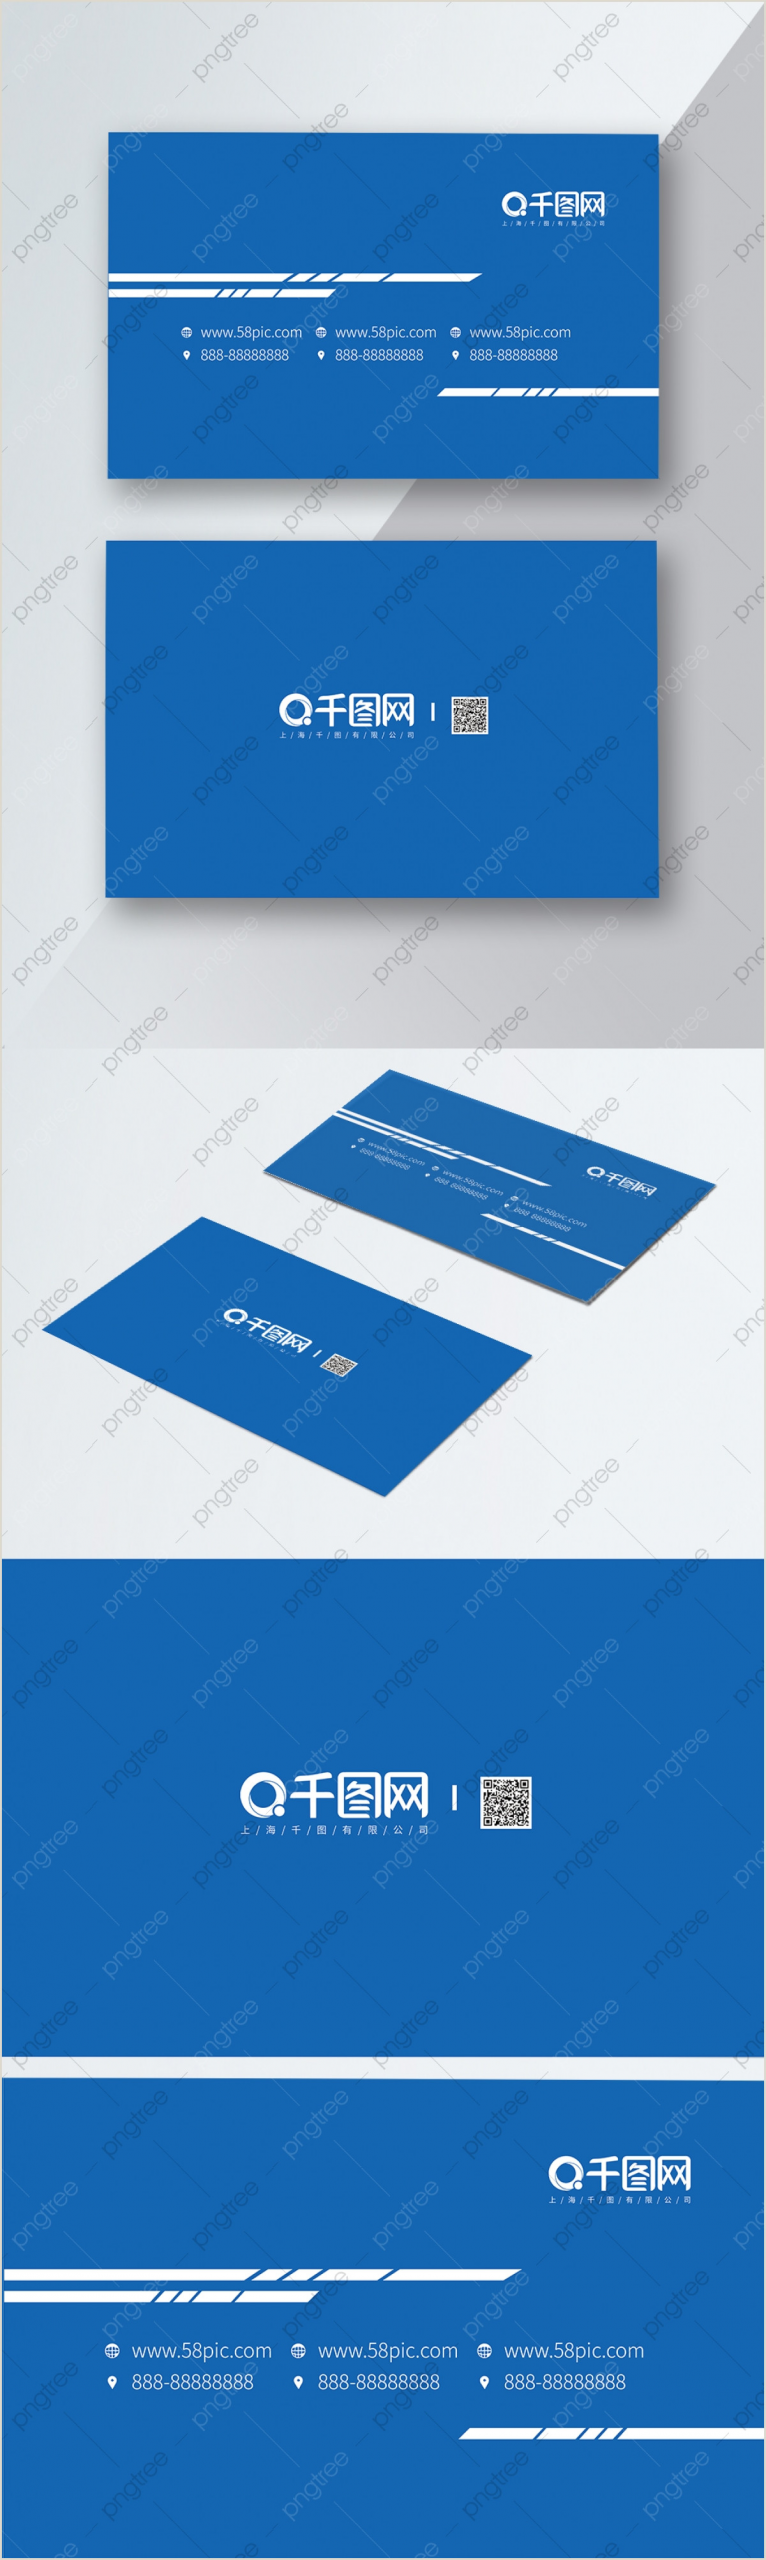 Make Personal Business Cards Personalized Business Cards Png